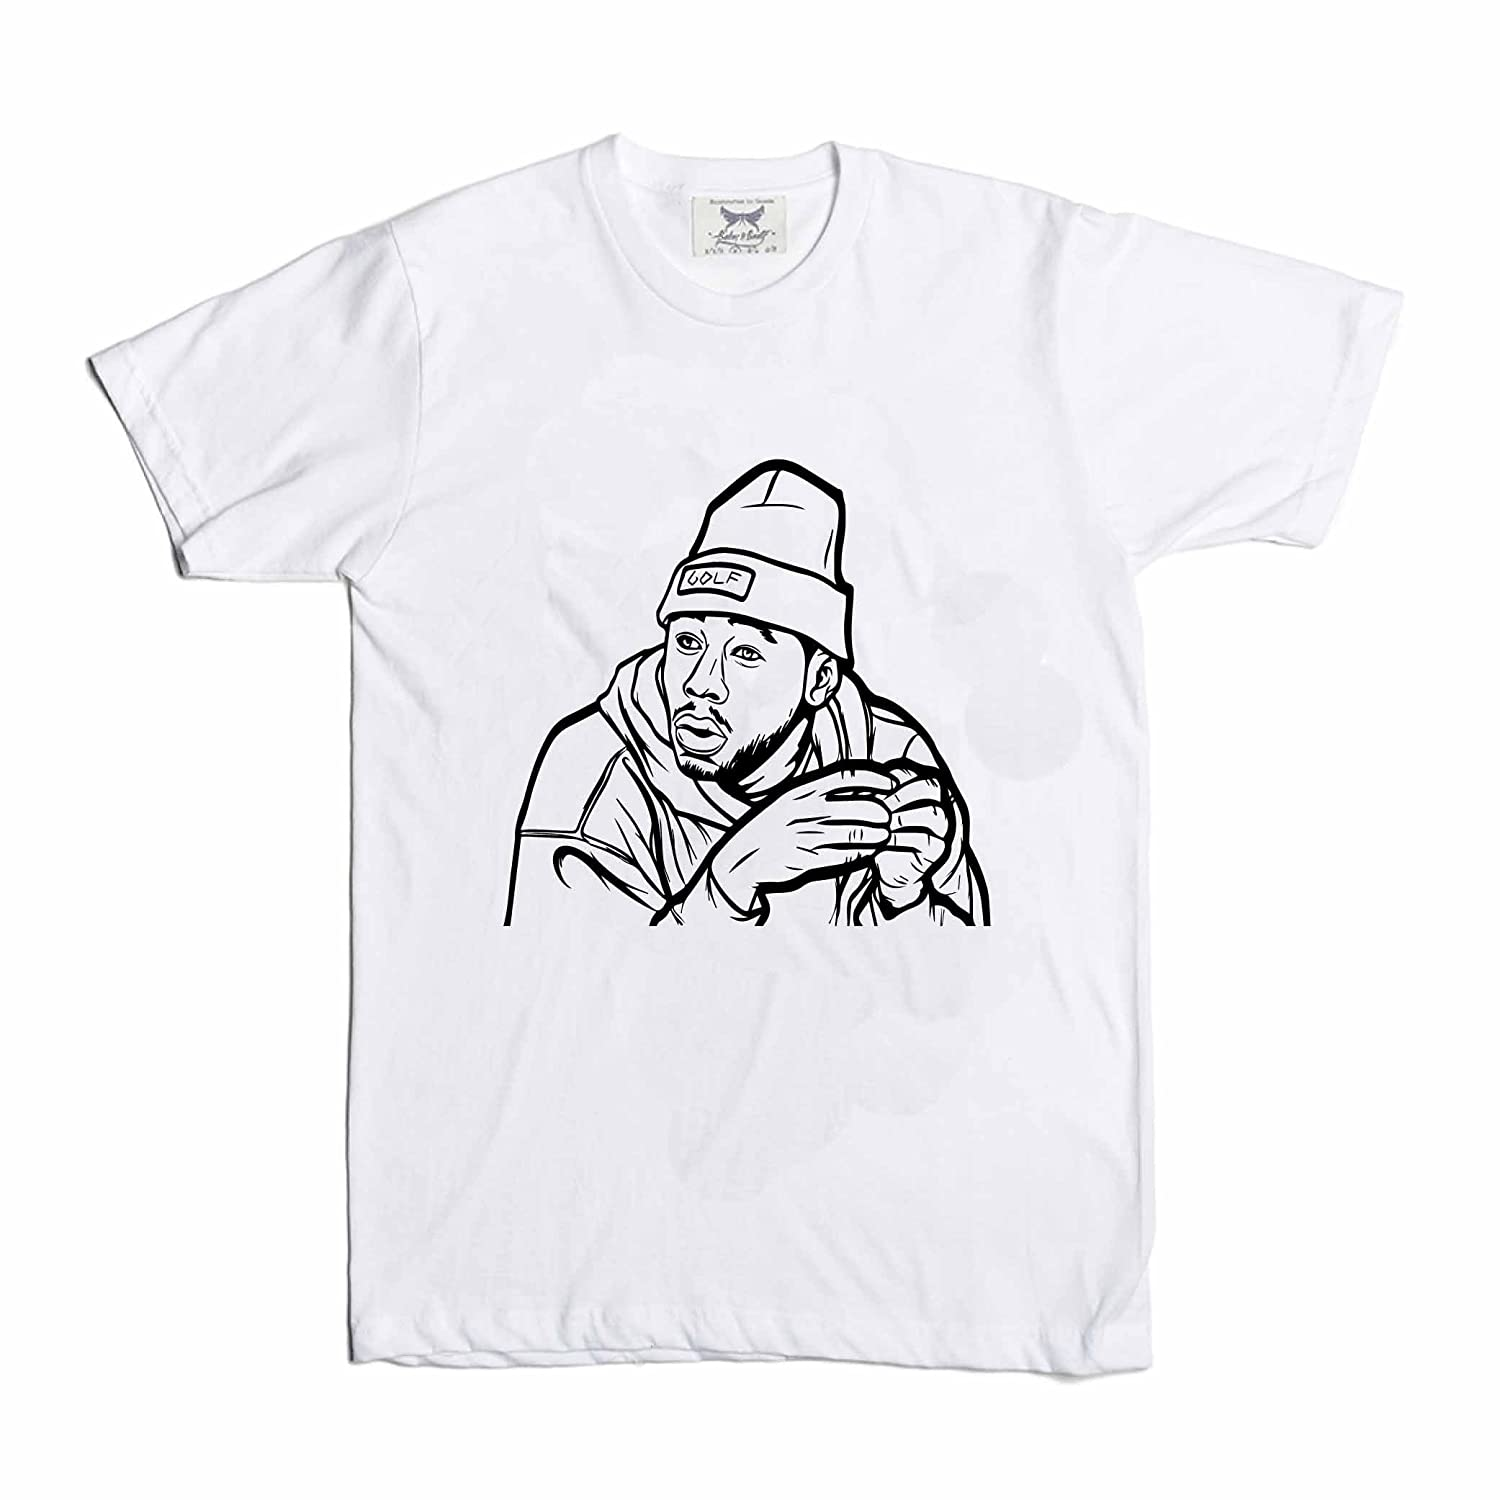 b3cdd6eb3b8a75 outlet Tyler The Creator Golf White Tee (Unisex) at Amazon Men  s ...